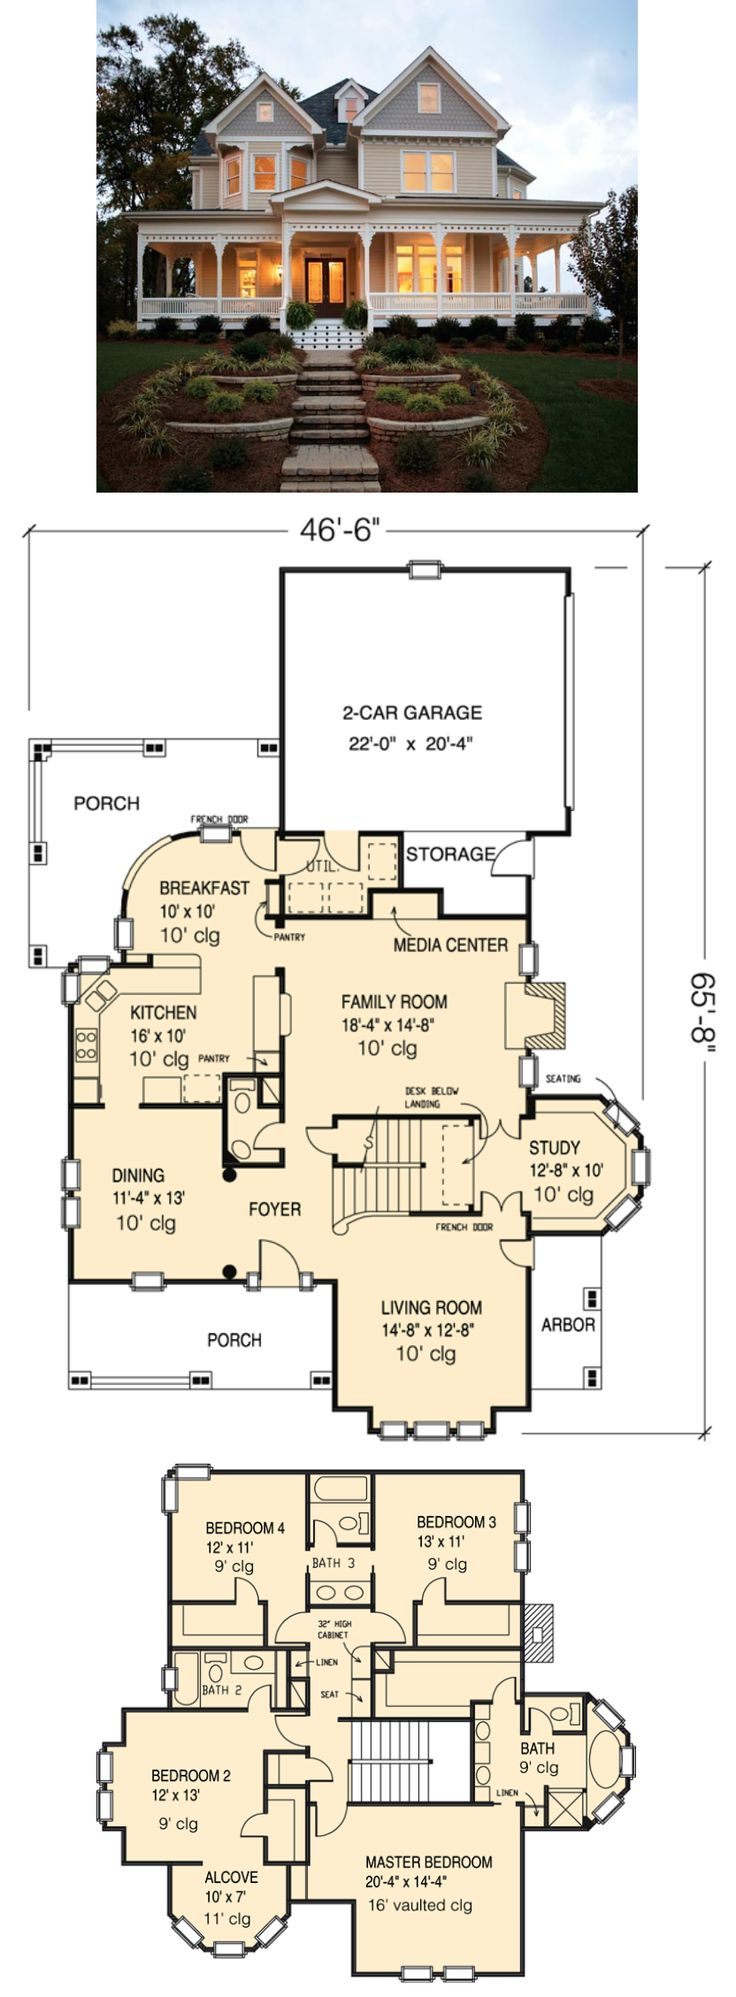 Best 25+ Basement floor plans ideas on Pinterest